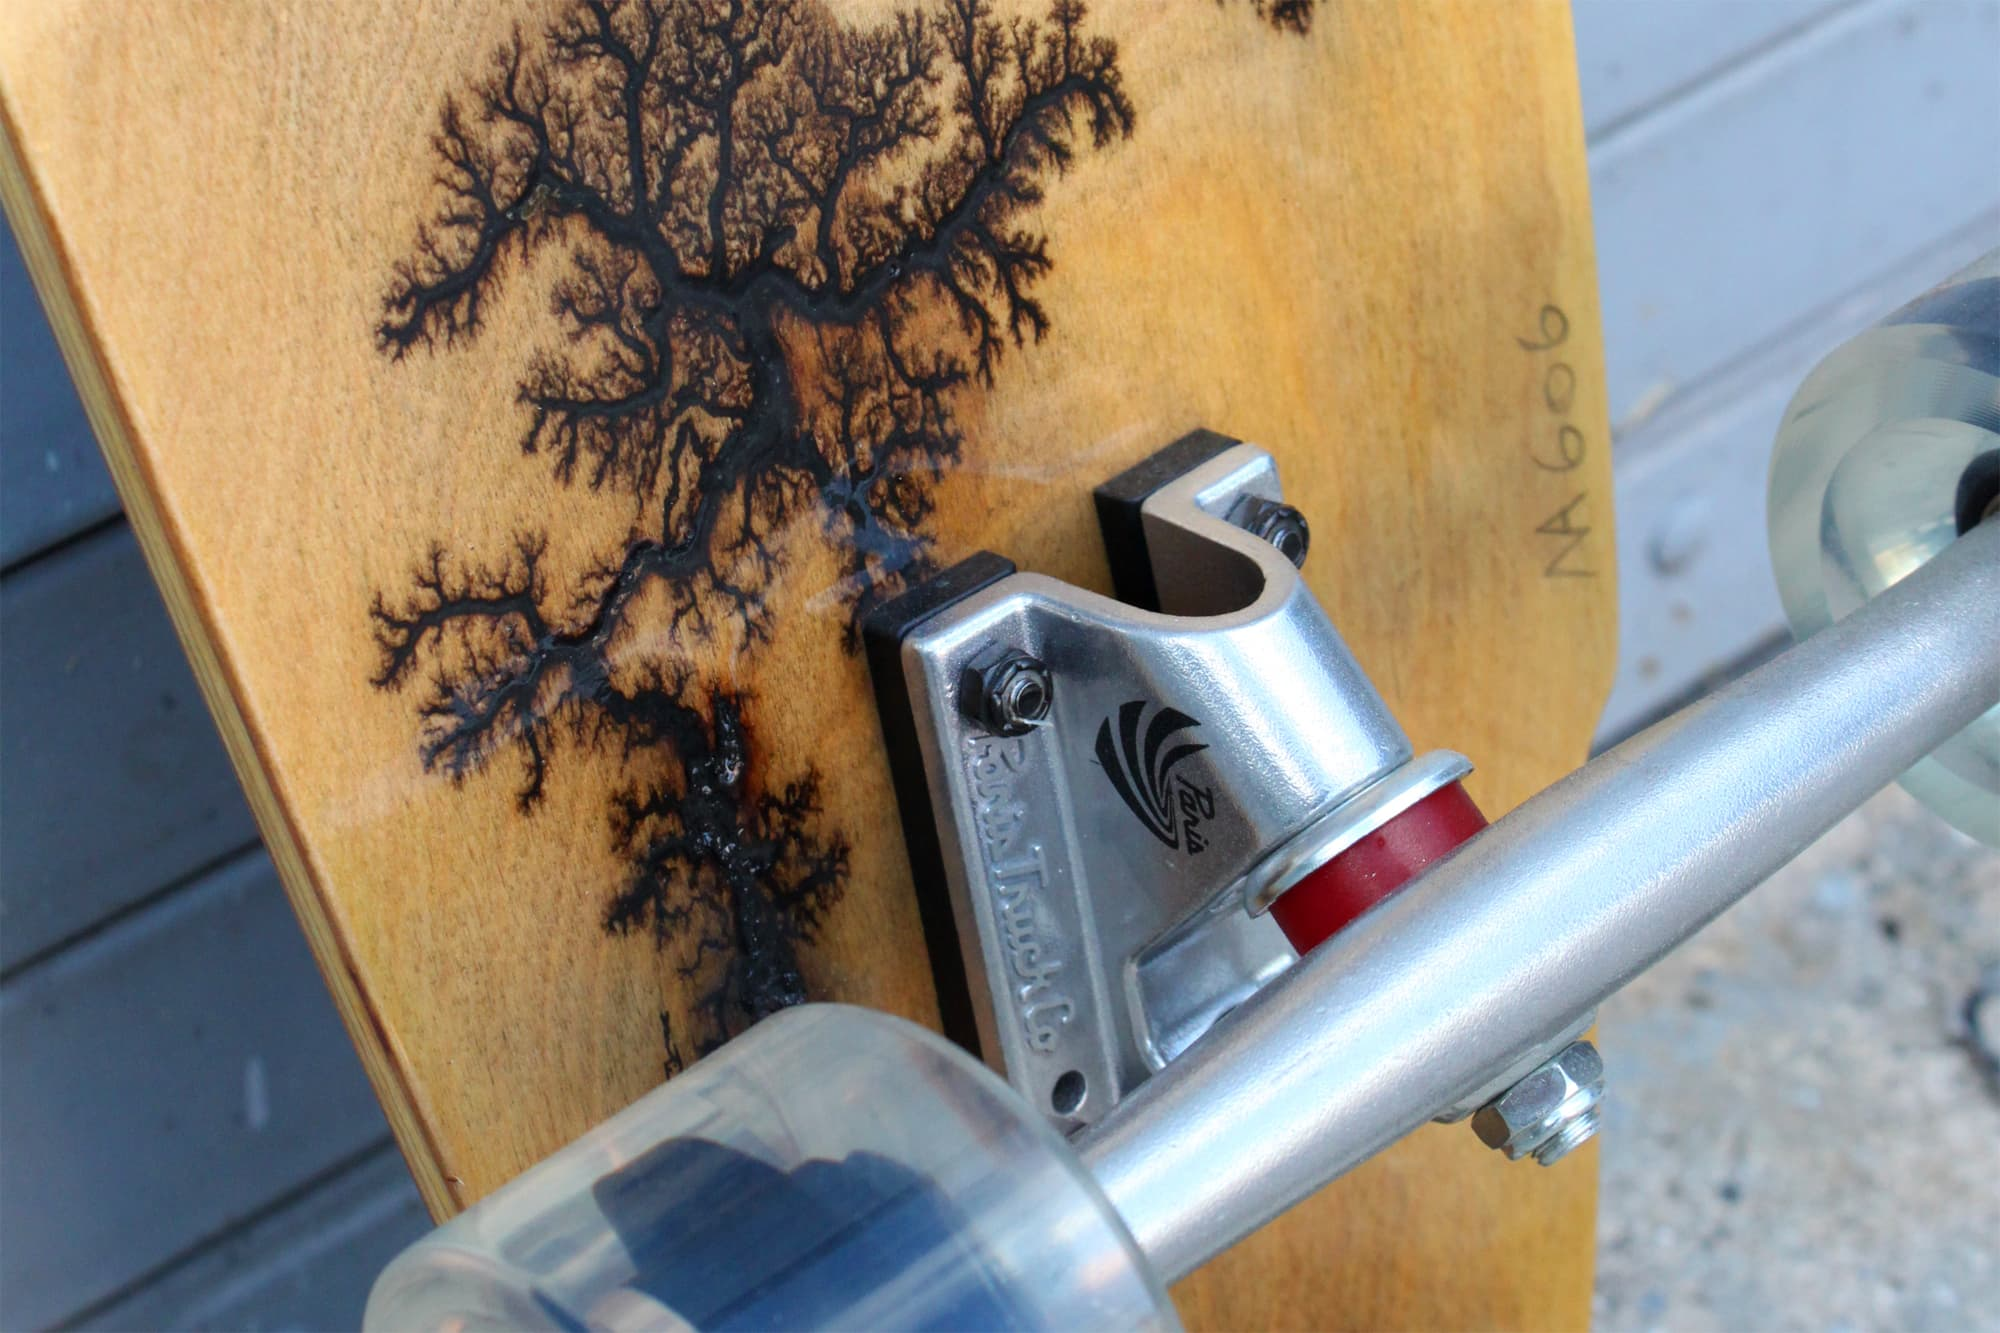 One-of-a-kind high voltage wood-burning deck art on every board